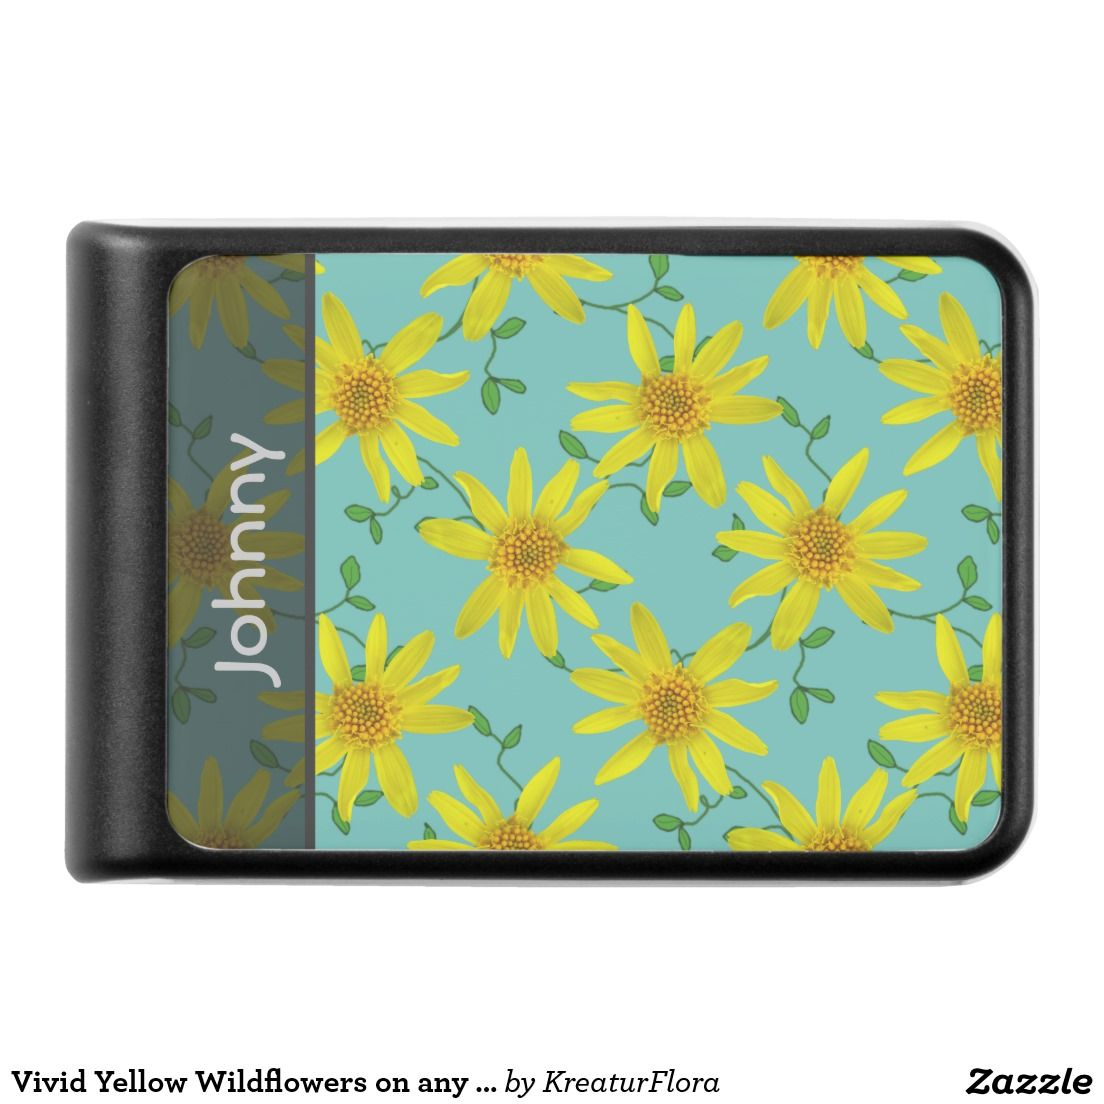 Vivid Yellow Wildflowers on any Color any Text Power Bank